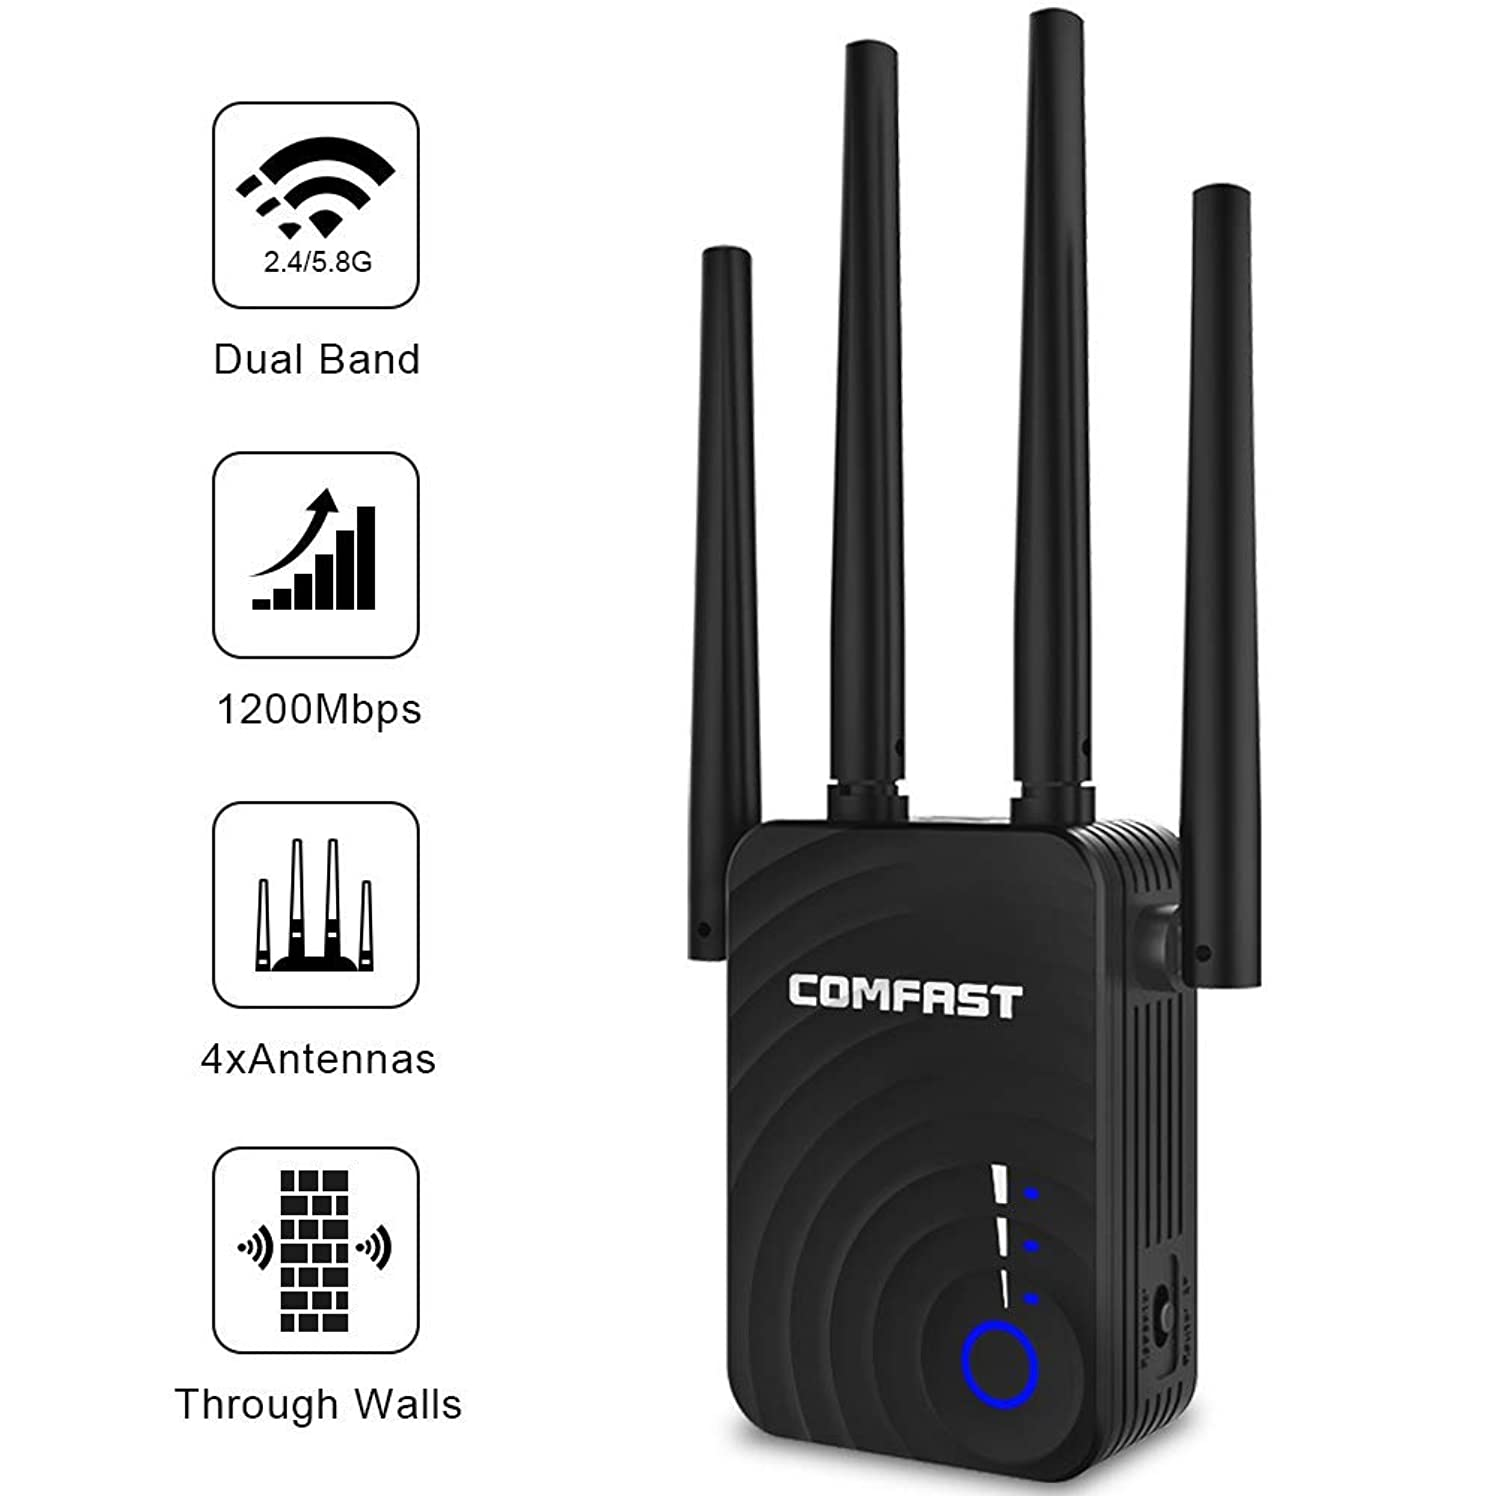 WiFi Extender | 1200Mbps WiFi Booster Signal Amplifier | 2.4&5GHz Dual Band WiFi Repeater Range Extender, 4 WiFi Antenna 360° Full Coverage Network | Compatible with Alexa/Extends WiFi to Smar